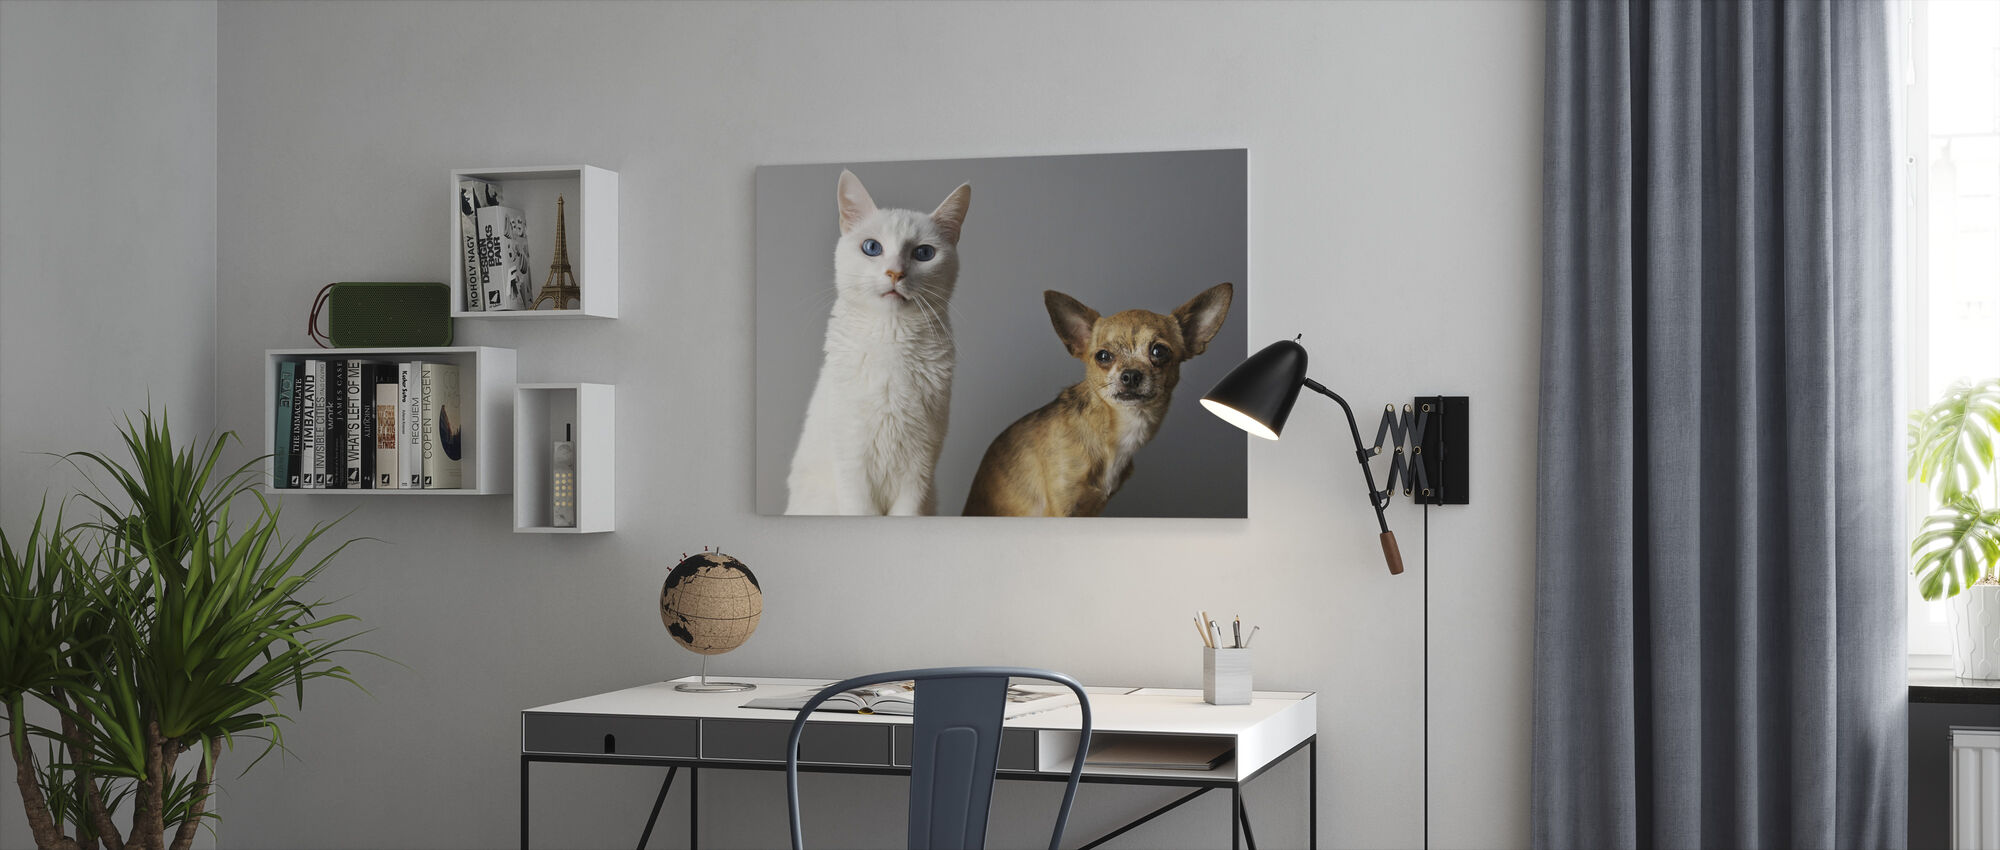 Duo of Cat and Dog - Canvas print - Office